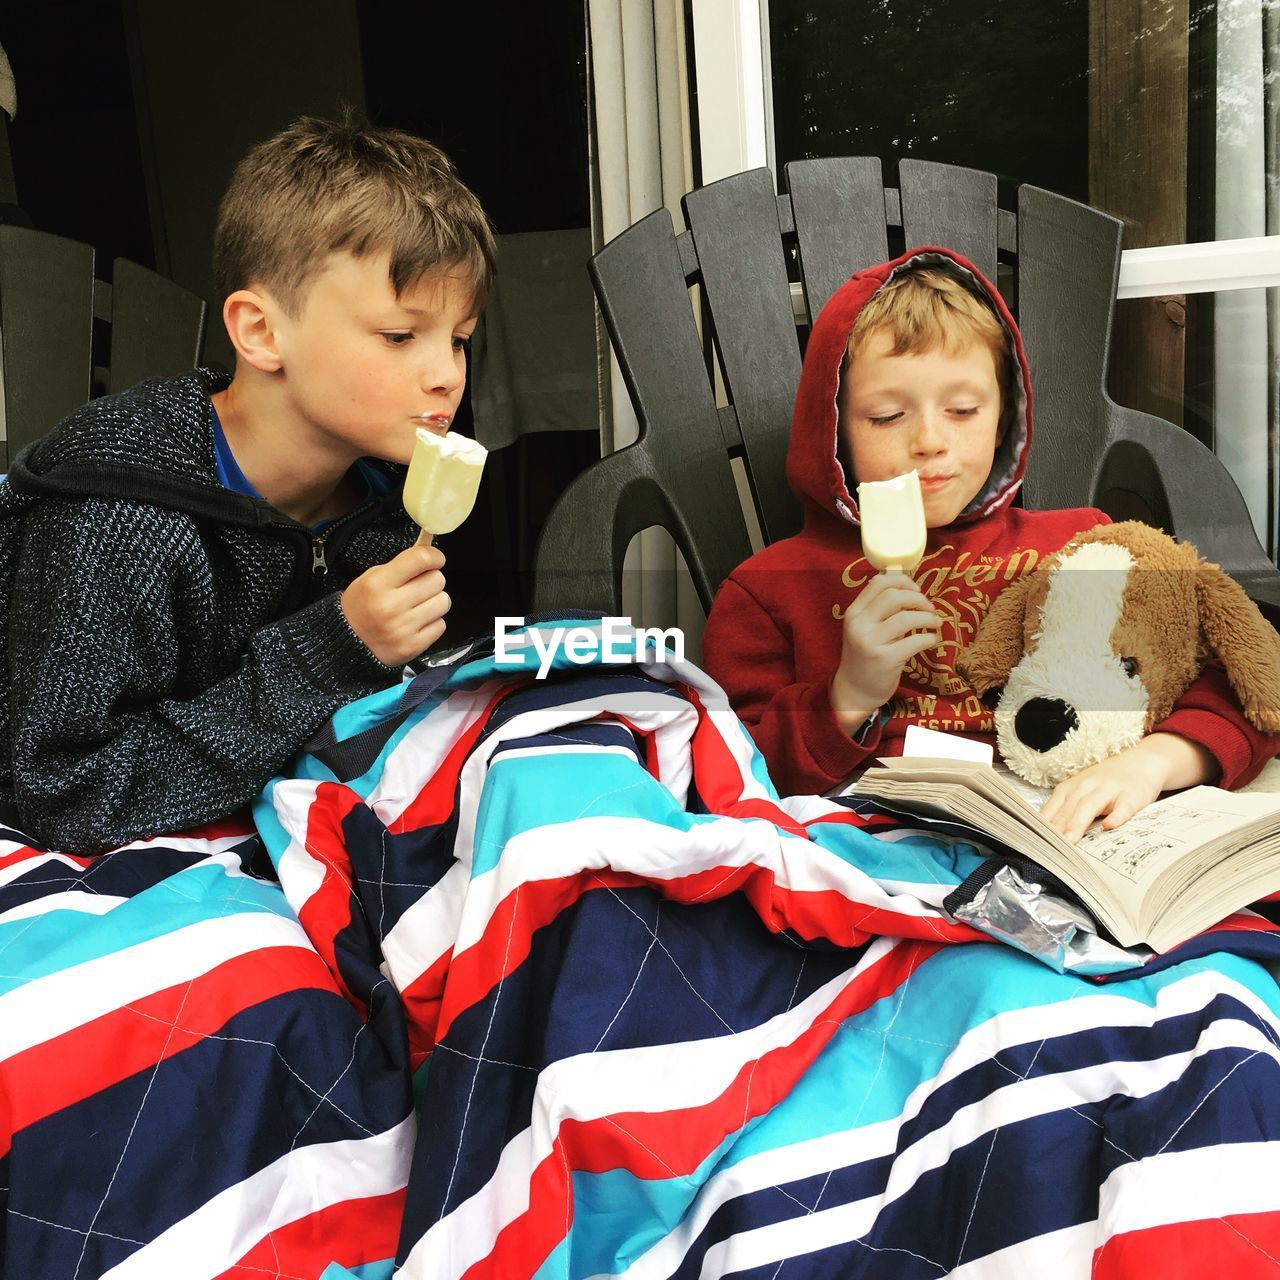 Brothers Reading Book While Eating Ice Cream At Home